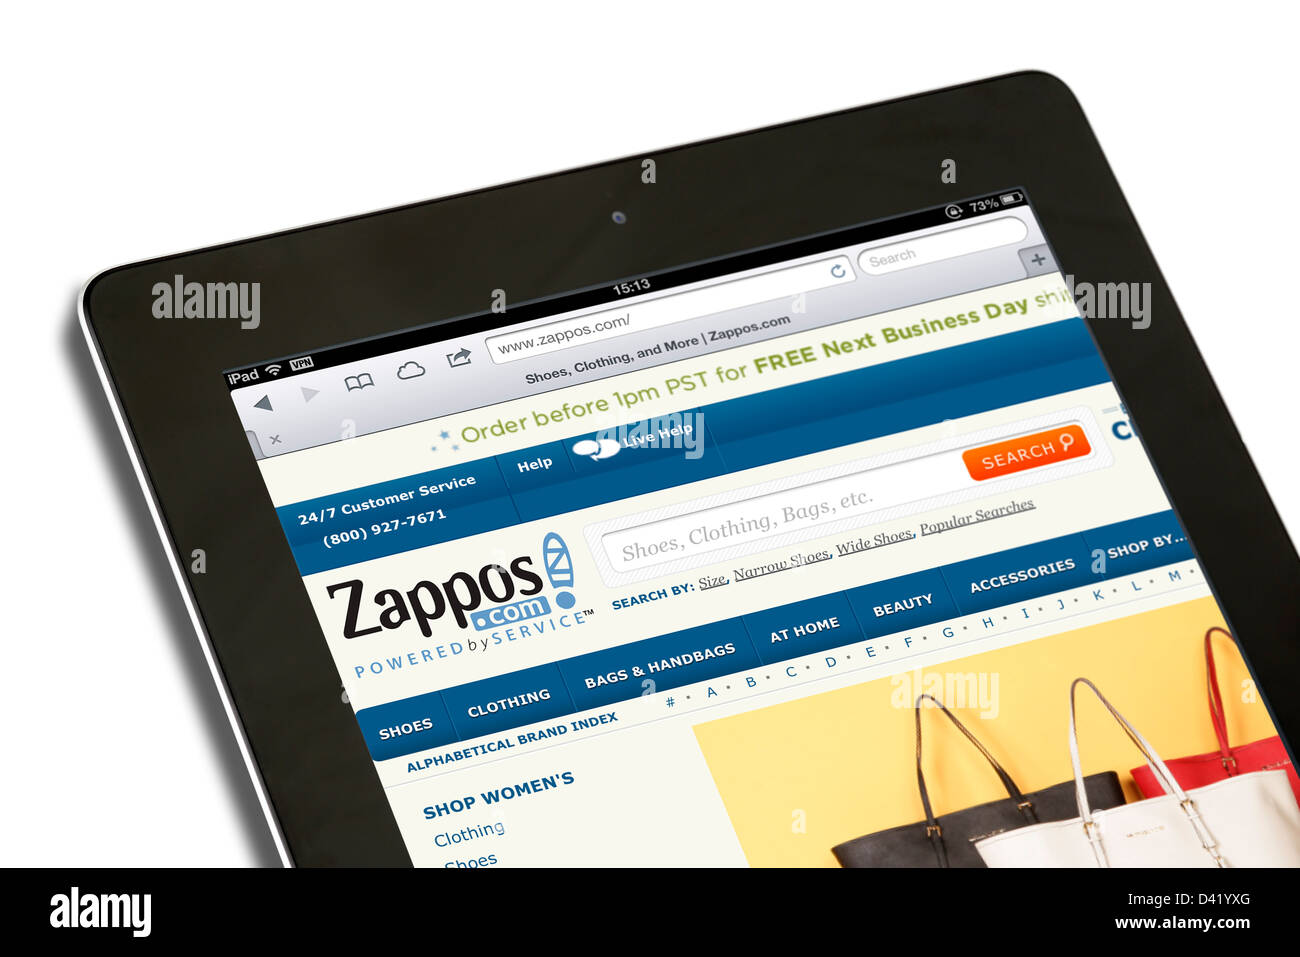 Online shoe and apparel website, Zappos.com (an Amazon company), viewed on an iPad 4, USA - Stock Image